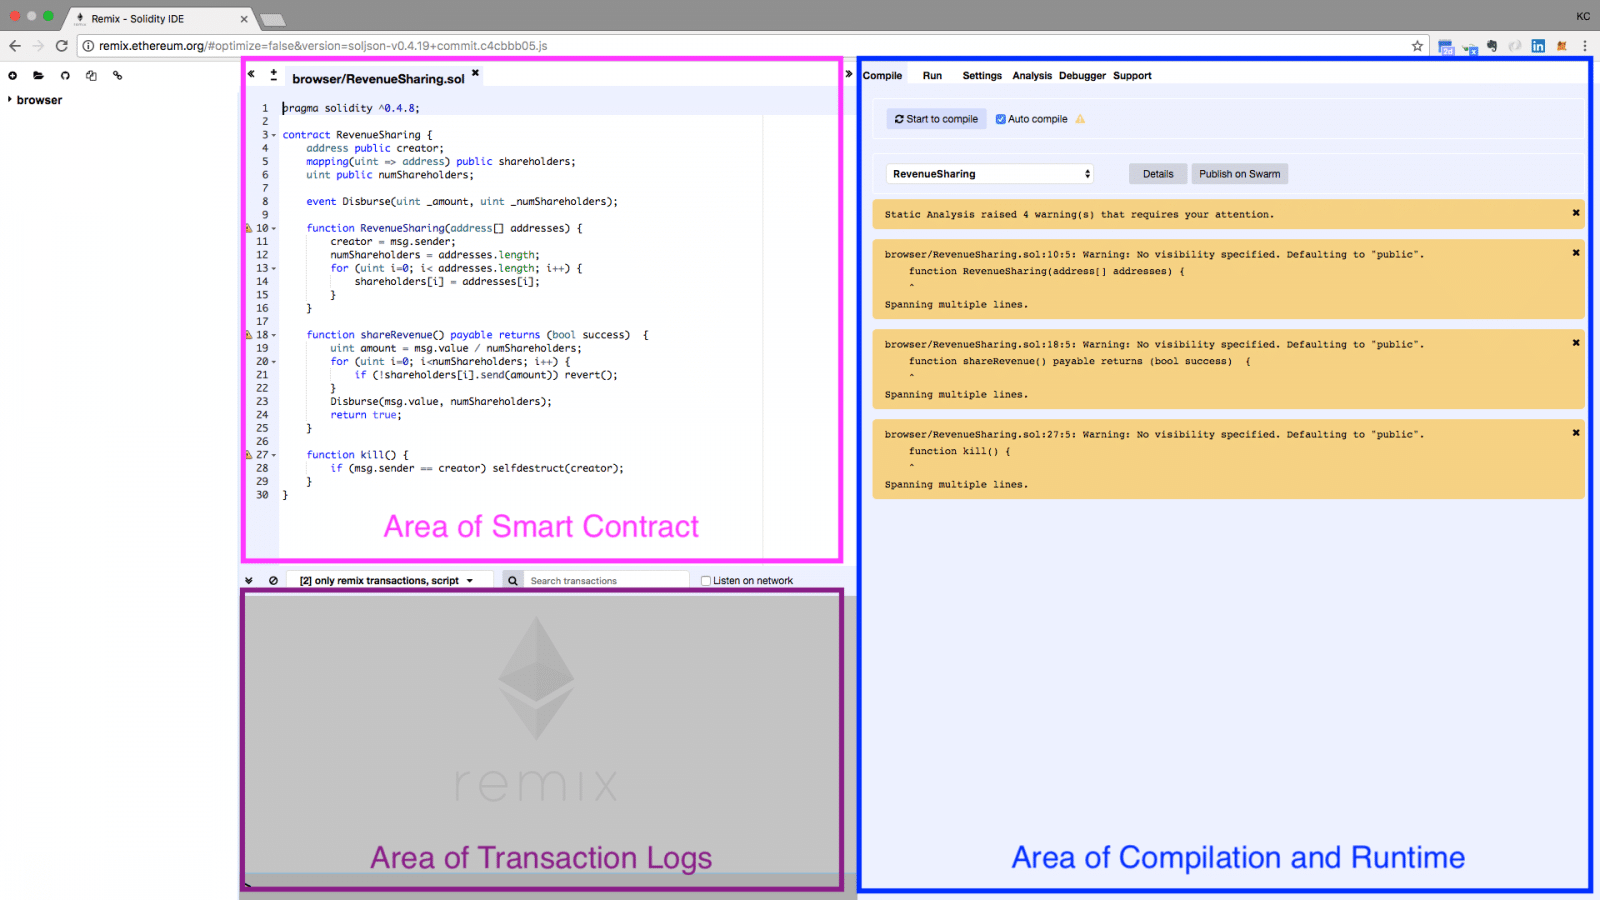 Using Various Tools for Smart Contract Development: Remix, Web3 on TestRPC